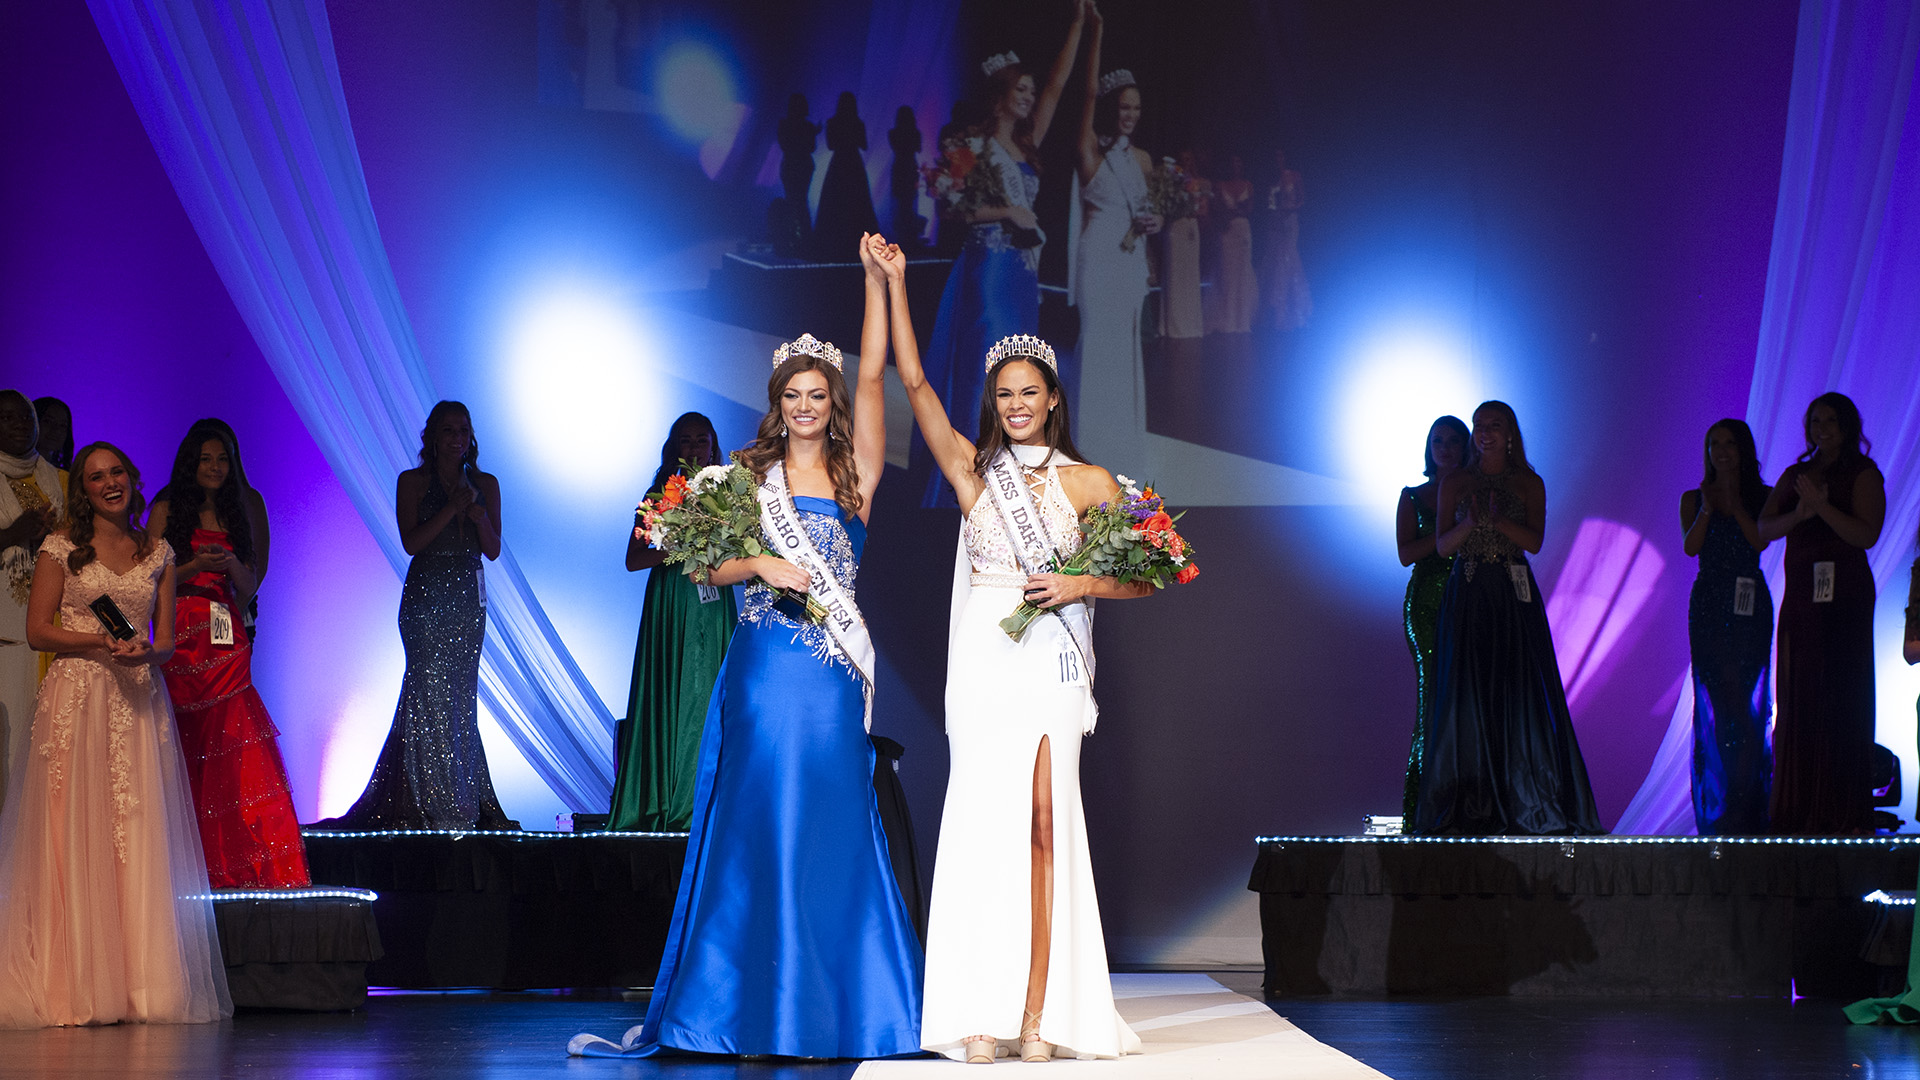 Miss Idaho USA 2020 and Miss Idaho Teen USA 2020 crowned during annual competition Sunday